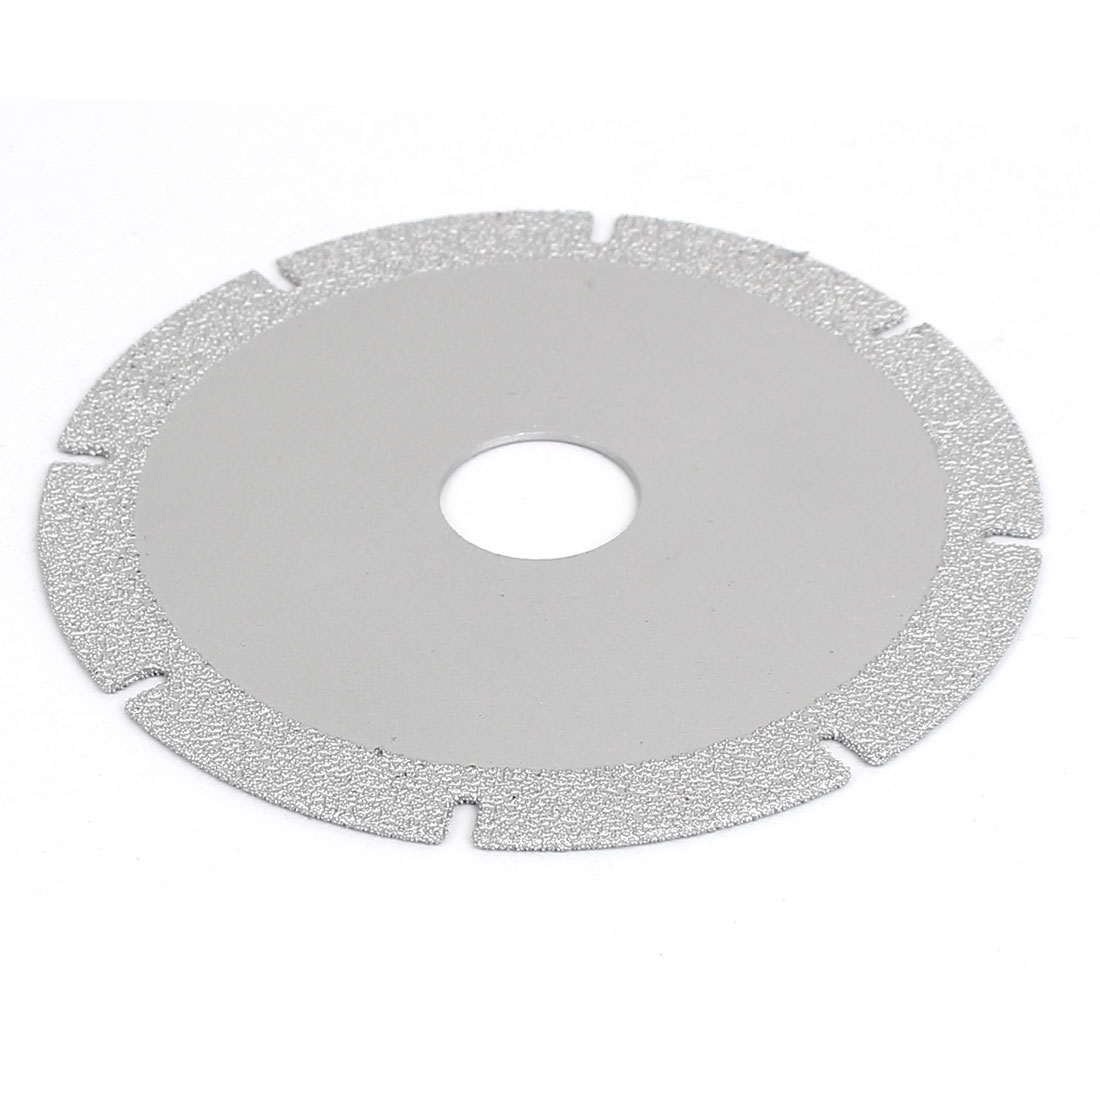 100mm Outer Dia 20mm Bore Diamond Circular Cutting Saw Cutter for Marble